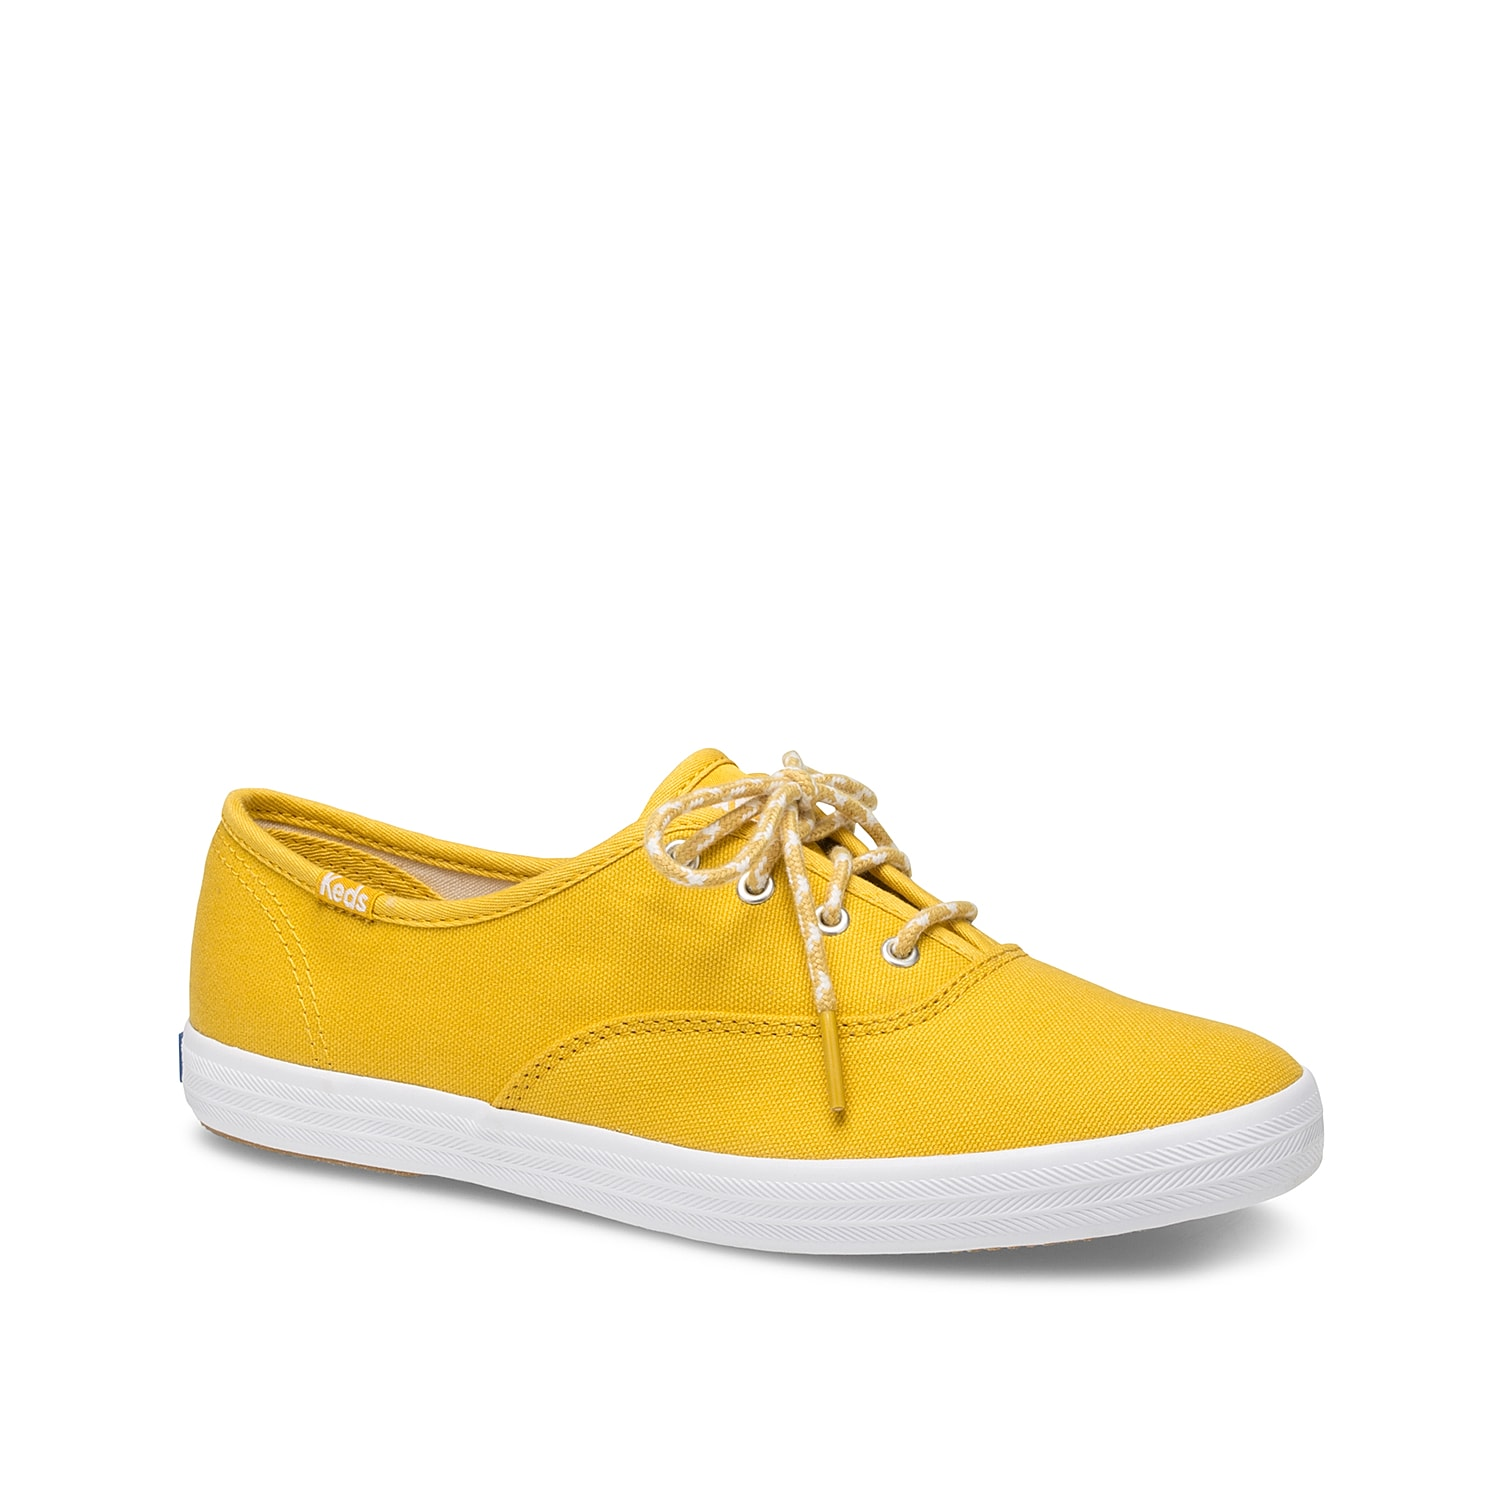 Be ready for whatever the day brings you in the Champion sneaker from Keds. Crafted from canvas, this lace-up profile features soft breathable lining for added comfort and flexible textured sole that ensures reliable footing.